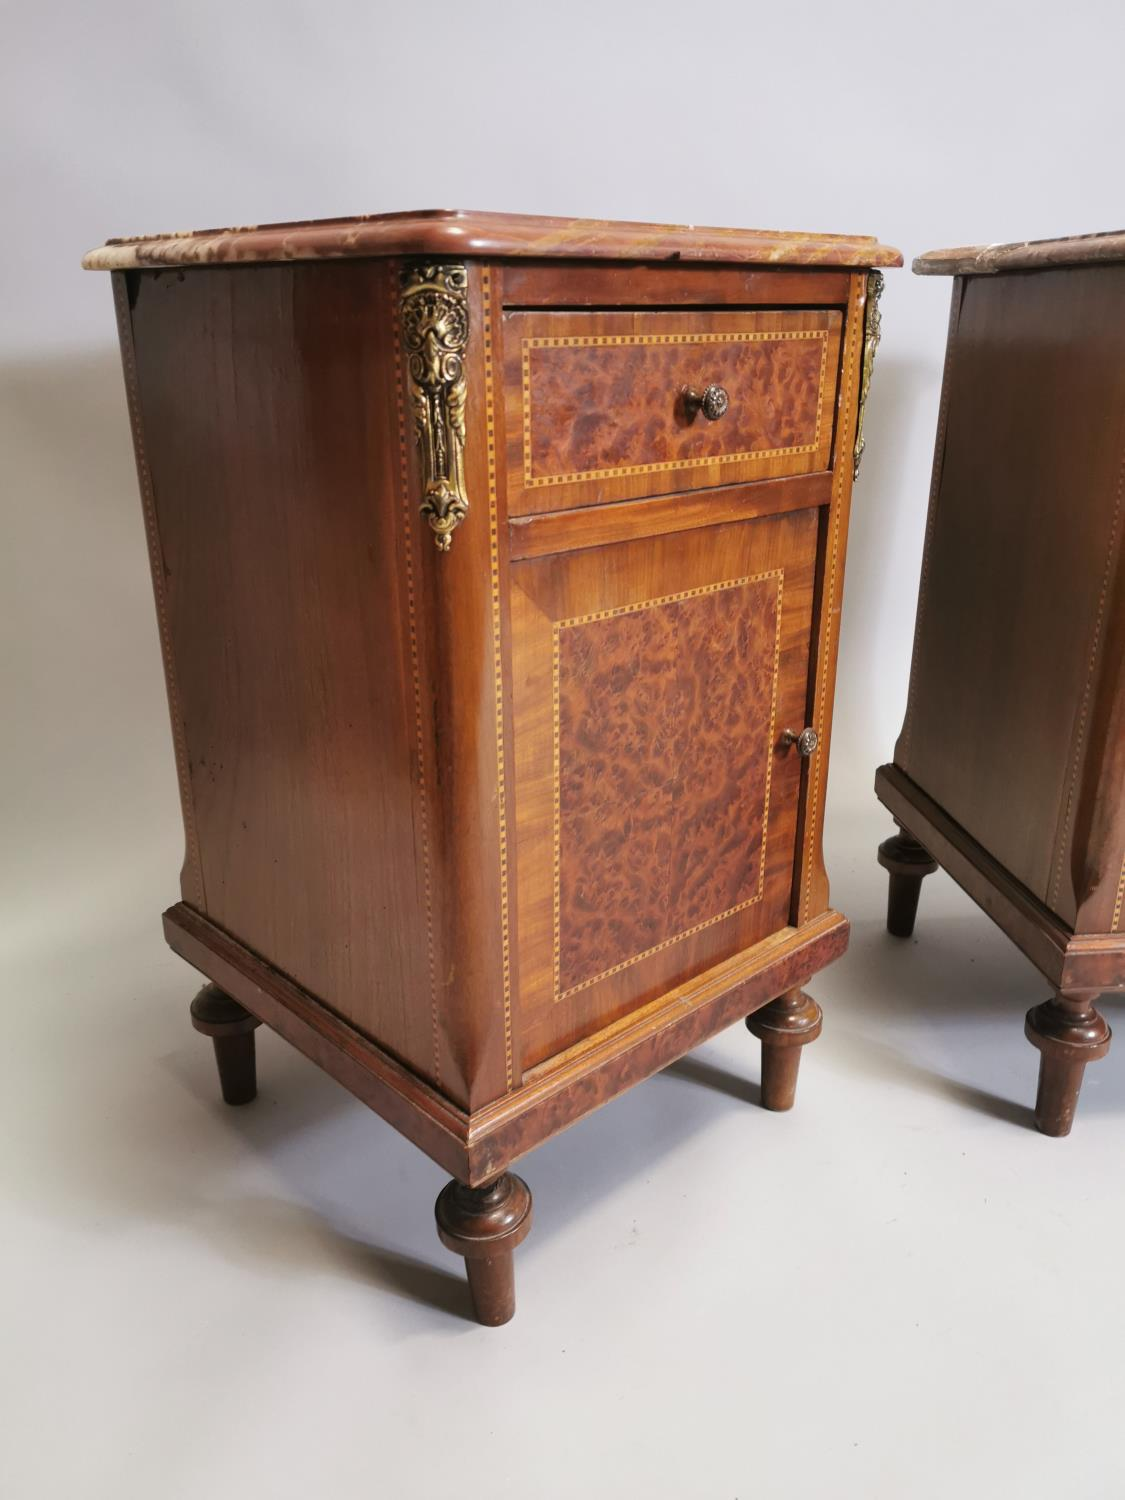 Pair of 19th. C. kingwood and burr walnut bedside lockers. - Image 4 of 8